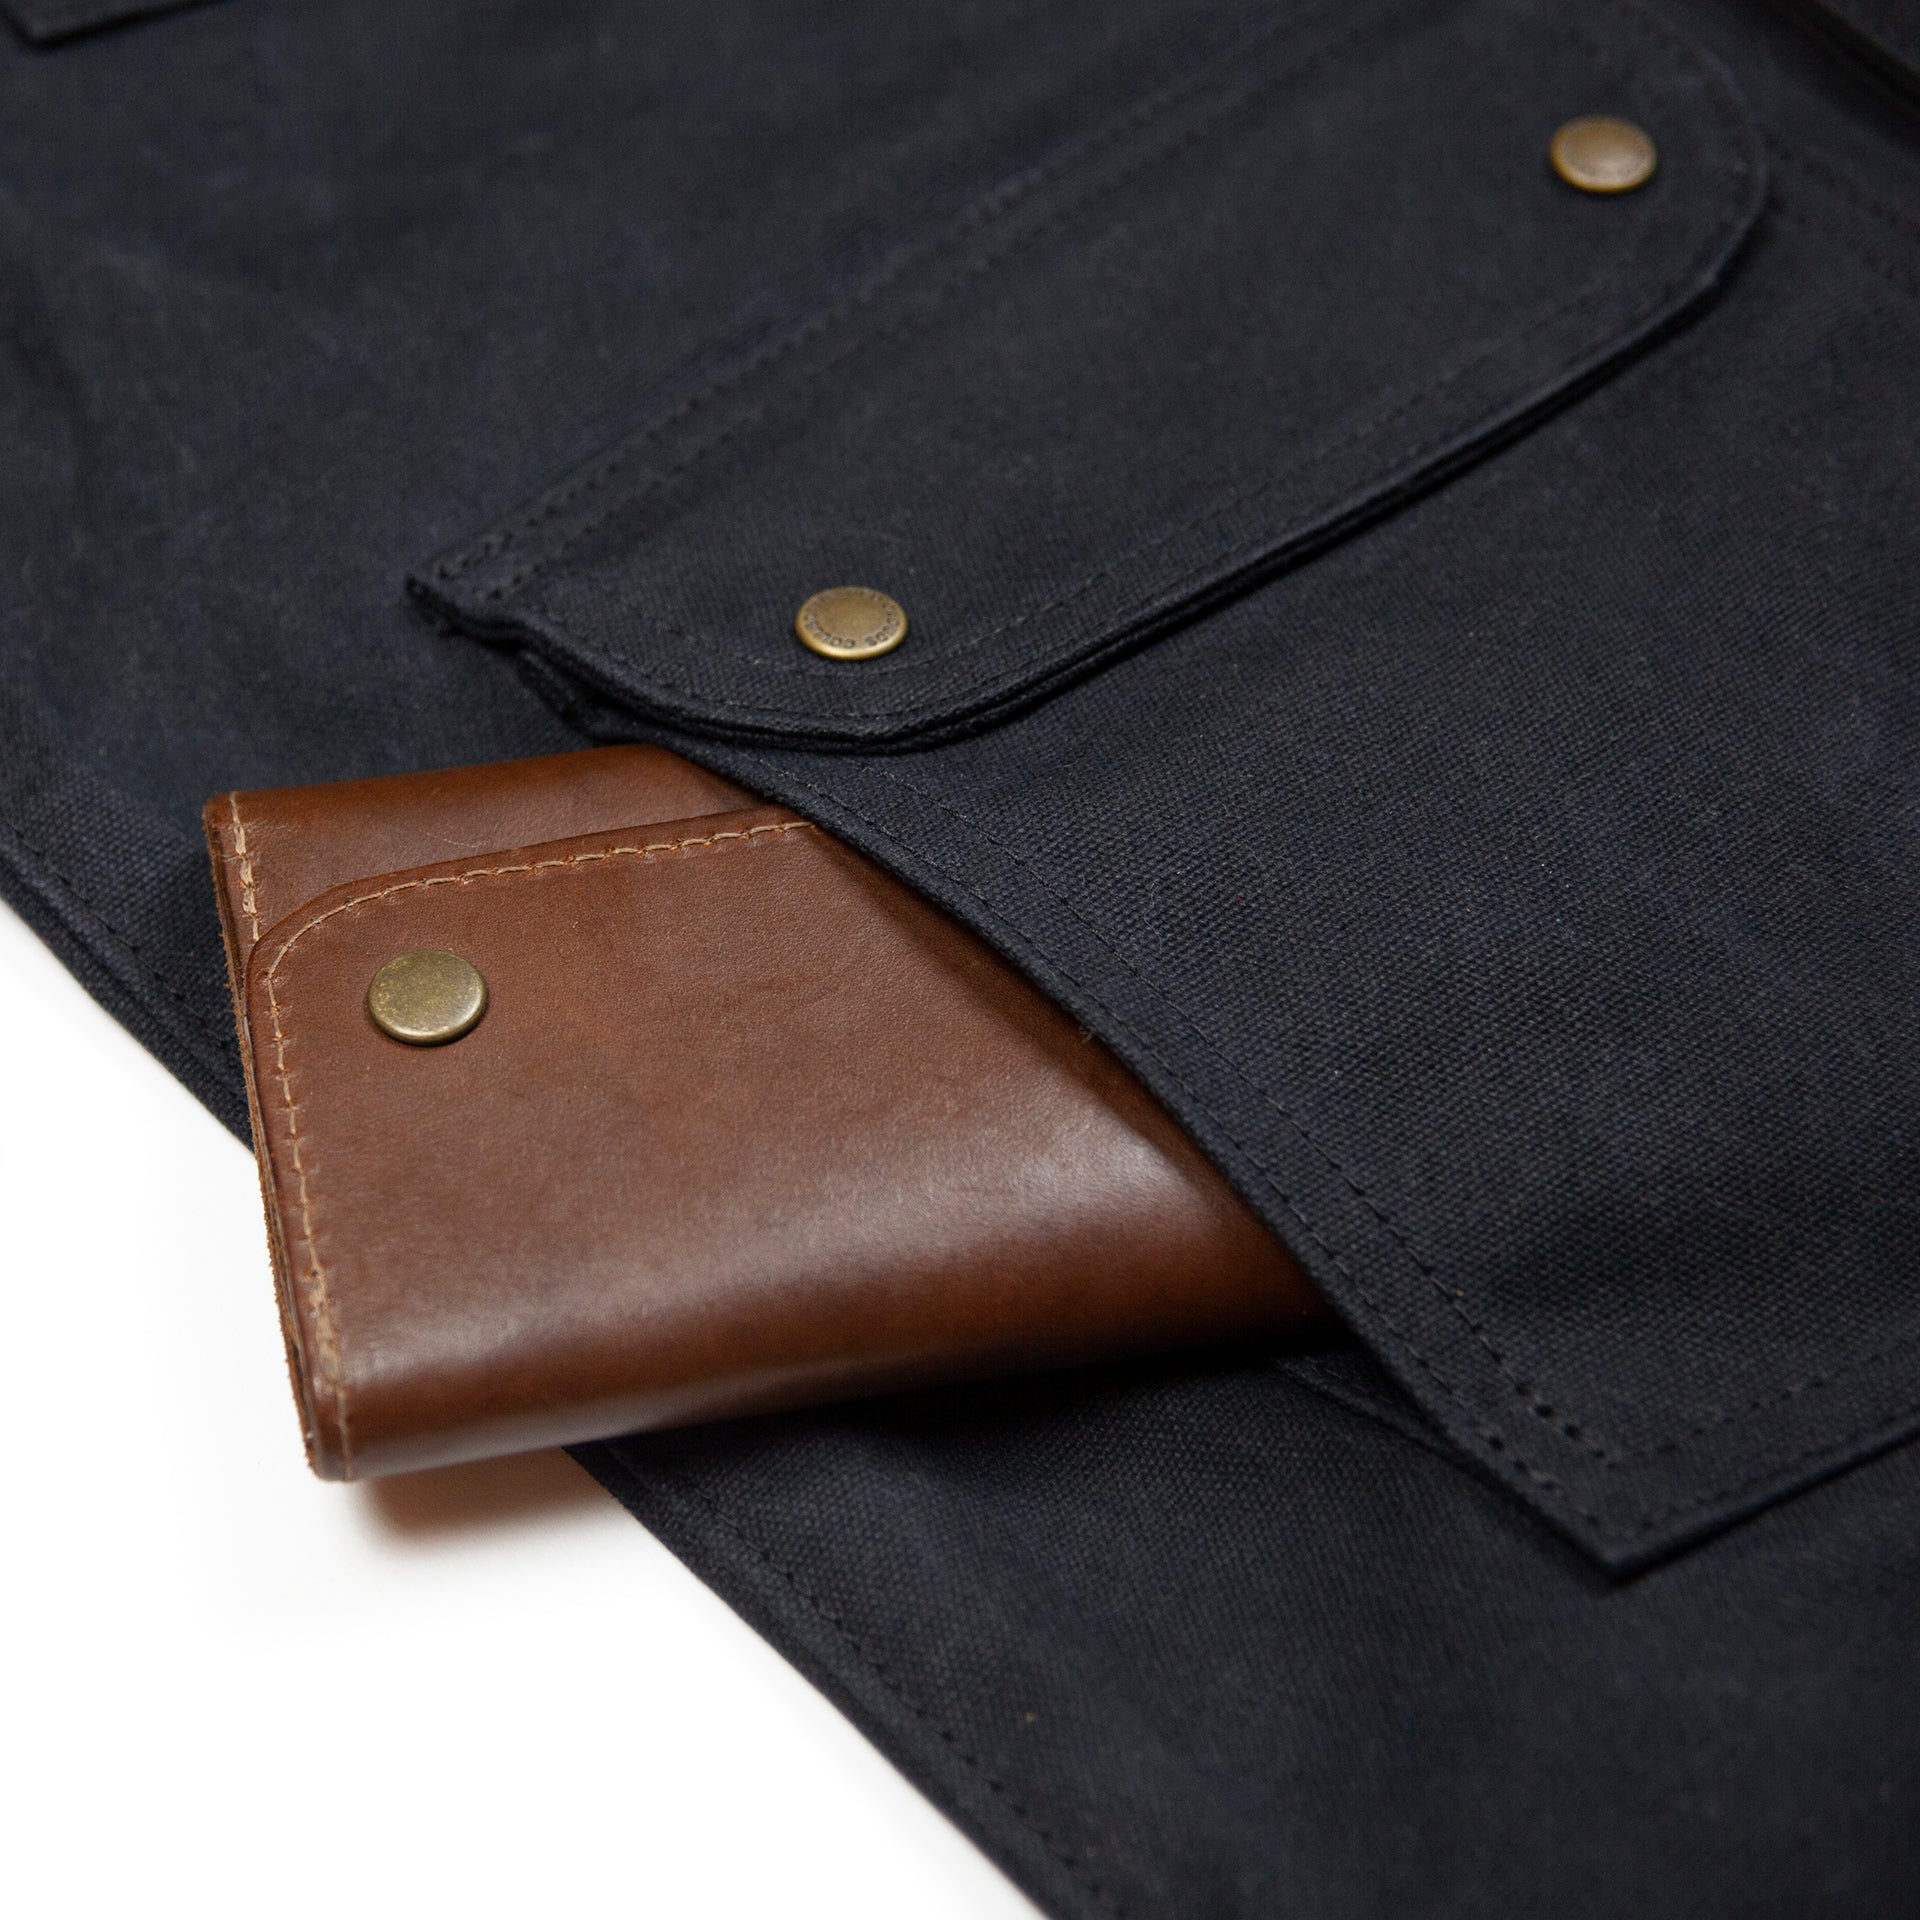 20 oz Waxed Canvas Jacket - Black